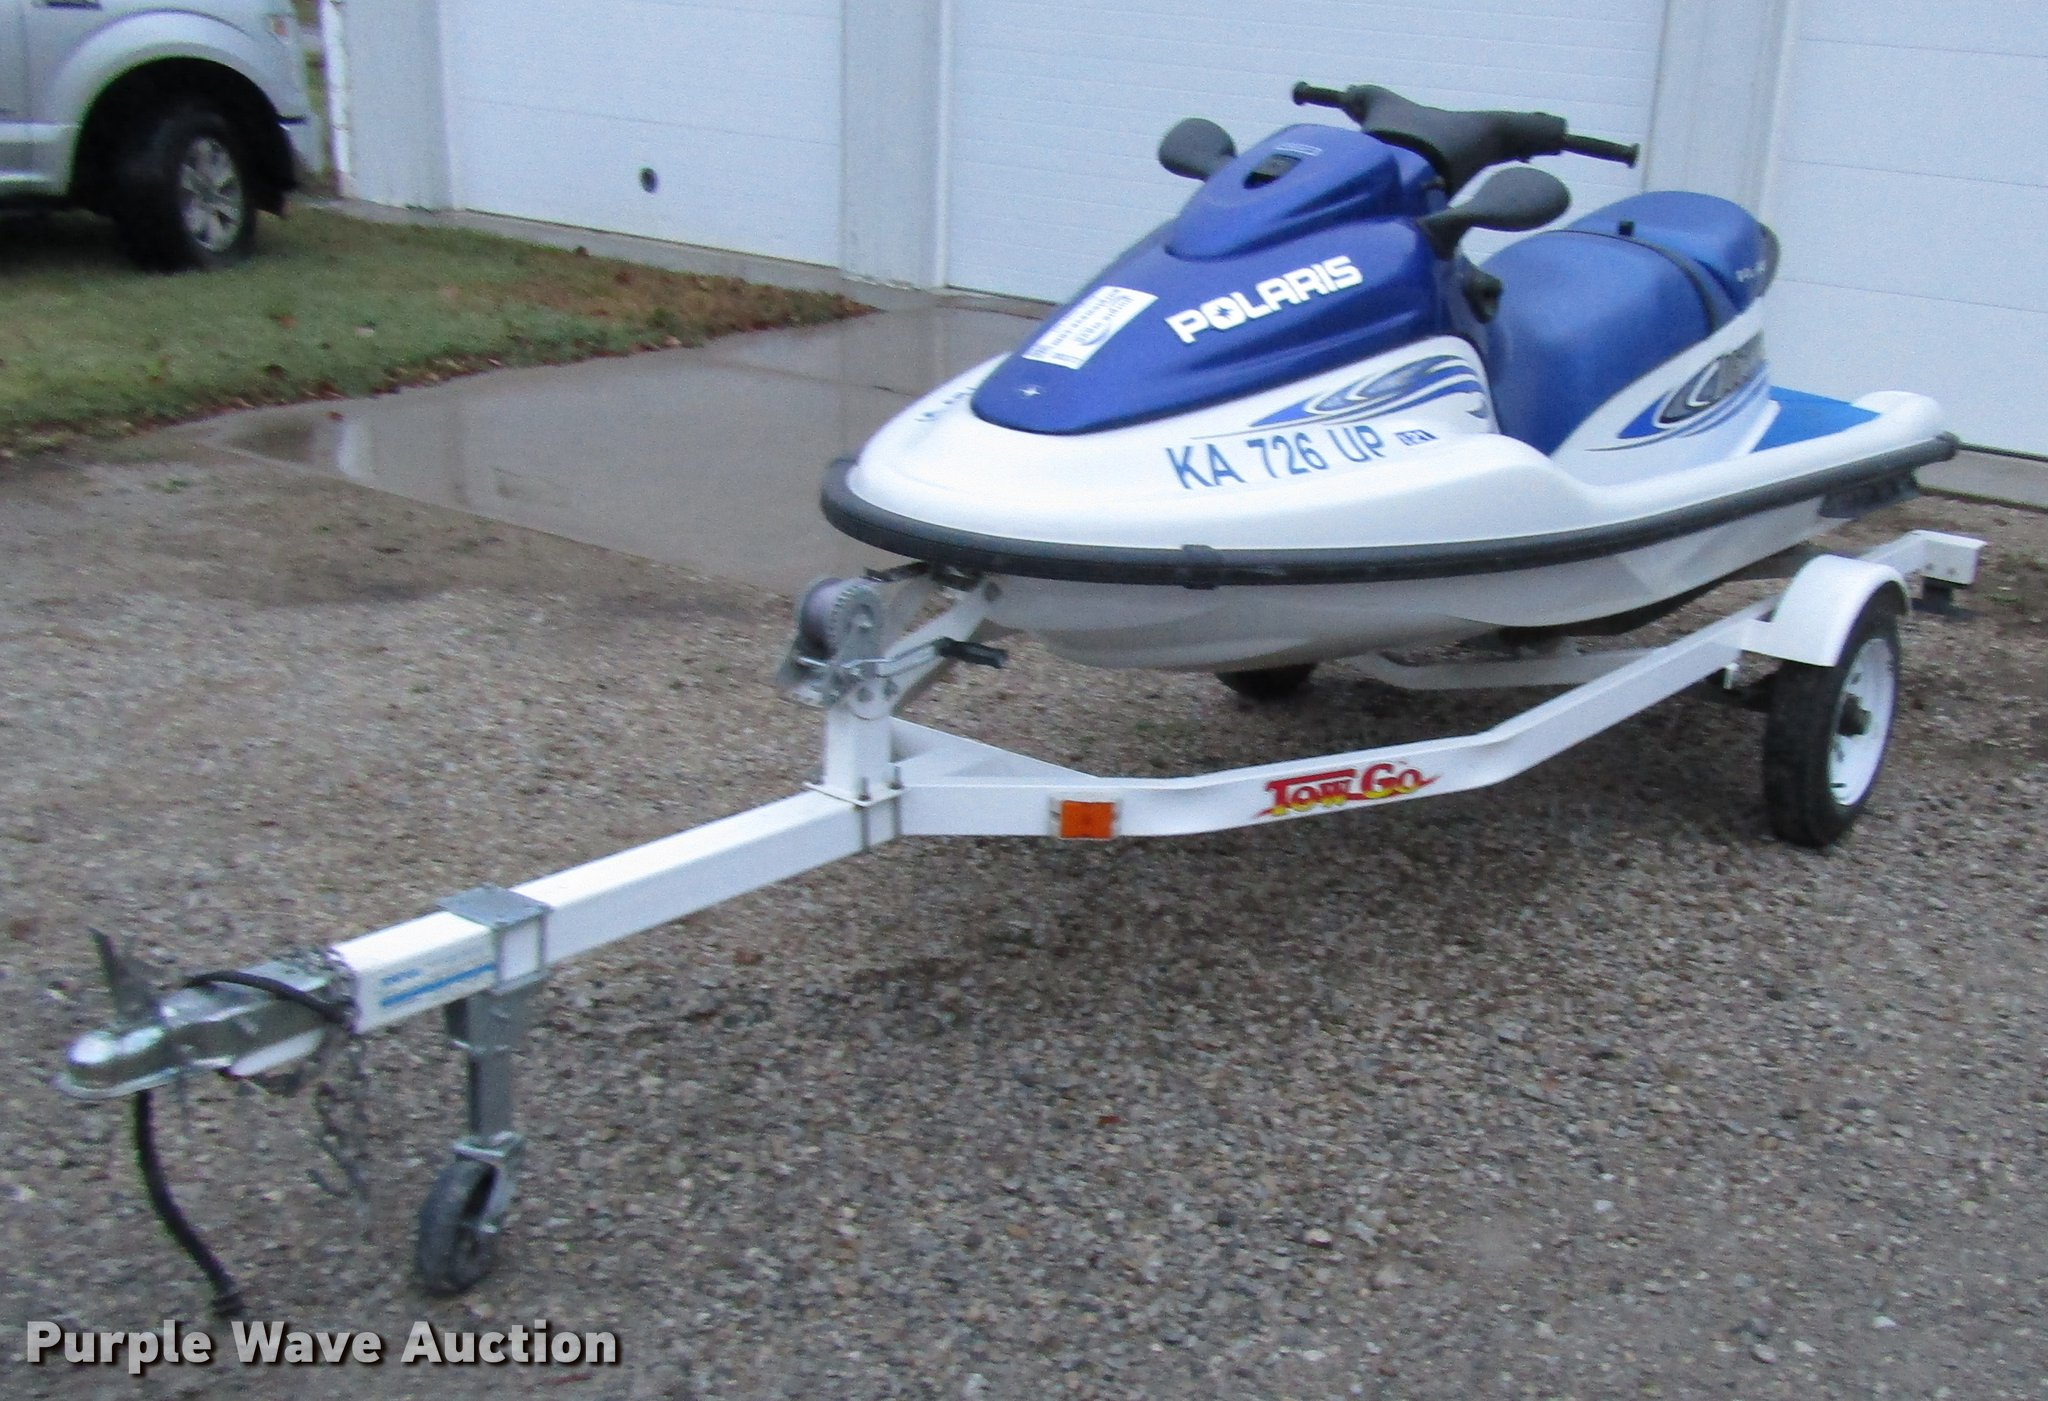 2001 Polaris Virage personal watercraft | Item DD3777 | SOLD